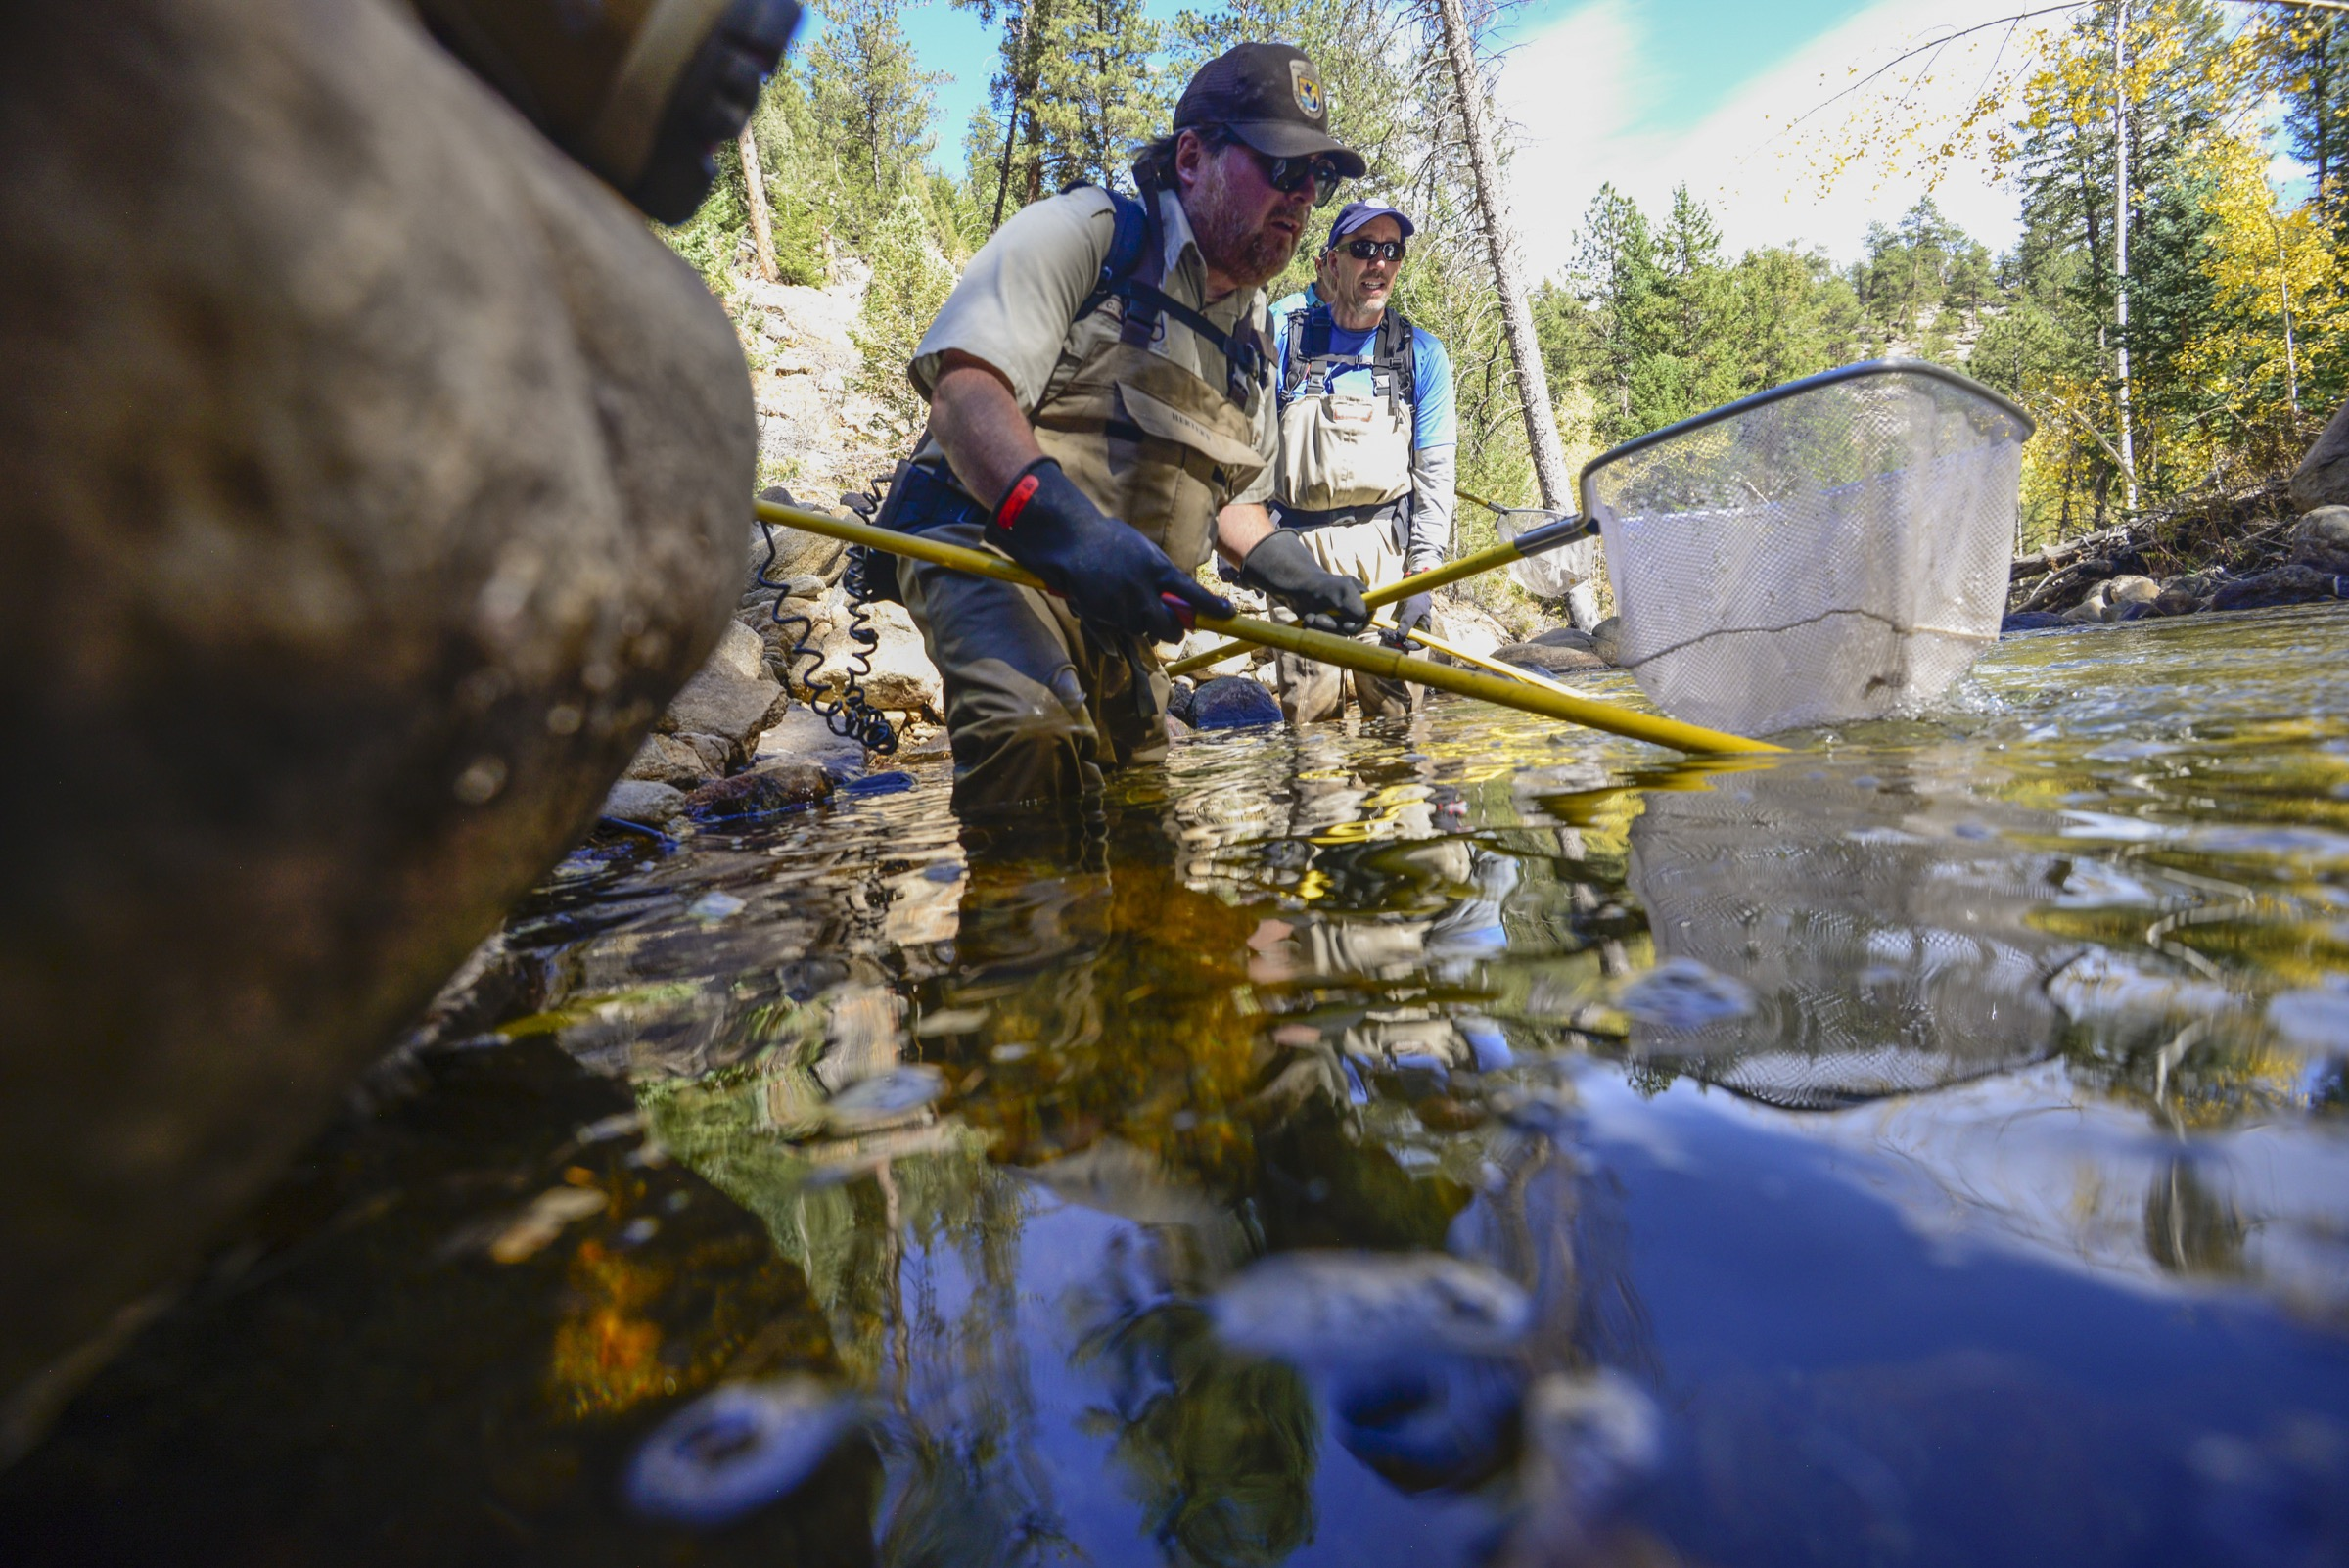 U.S. Fish and Wildlife Service biologist Chris Kennedy works to remove cutthroat trout from the waters of Rocky Mountain National Park's West Creek—trout that he and others helped establish here in years past. Photograph by Lindsay Fendt